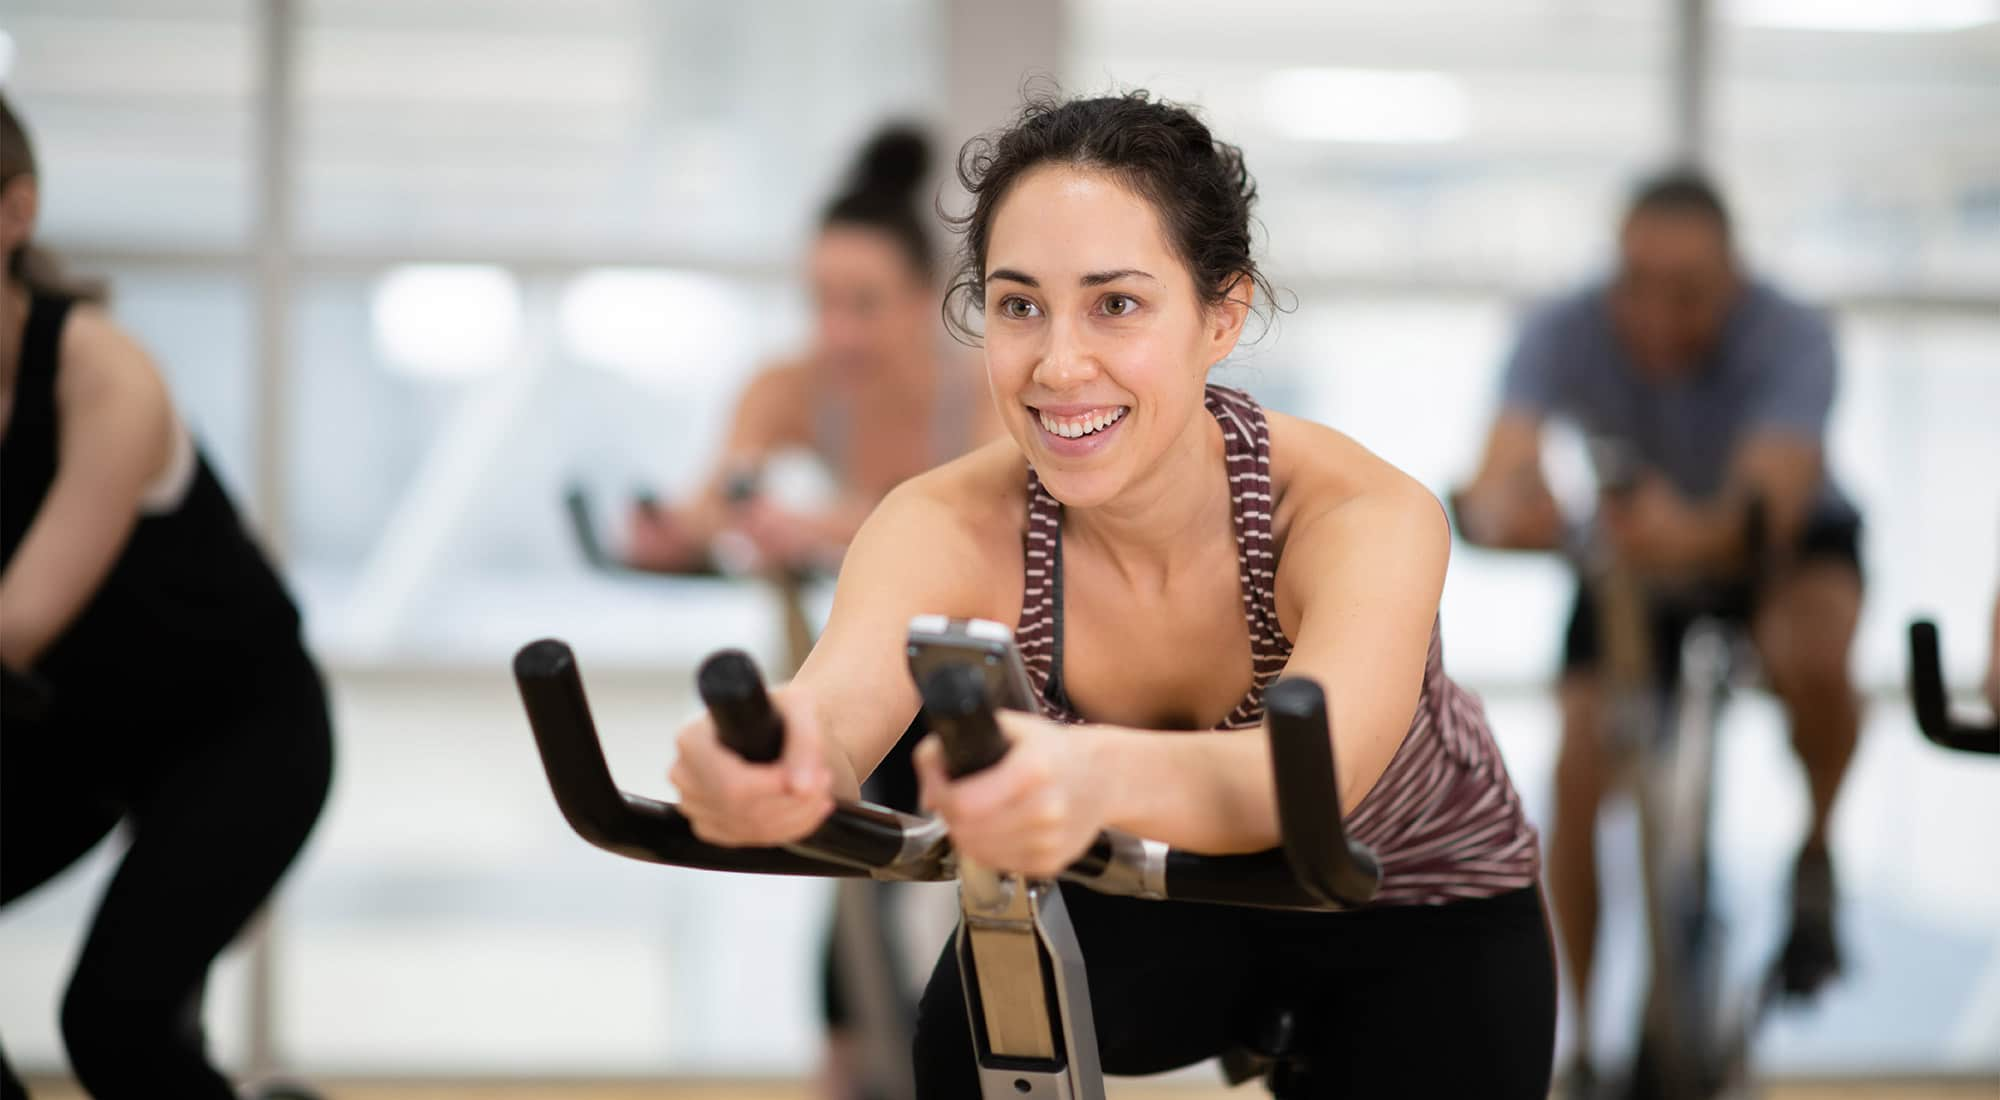 ukactive launches Fit Together campaign to lead safe reopening of gyms and leisure facilities